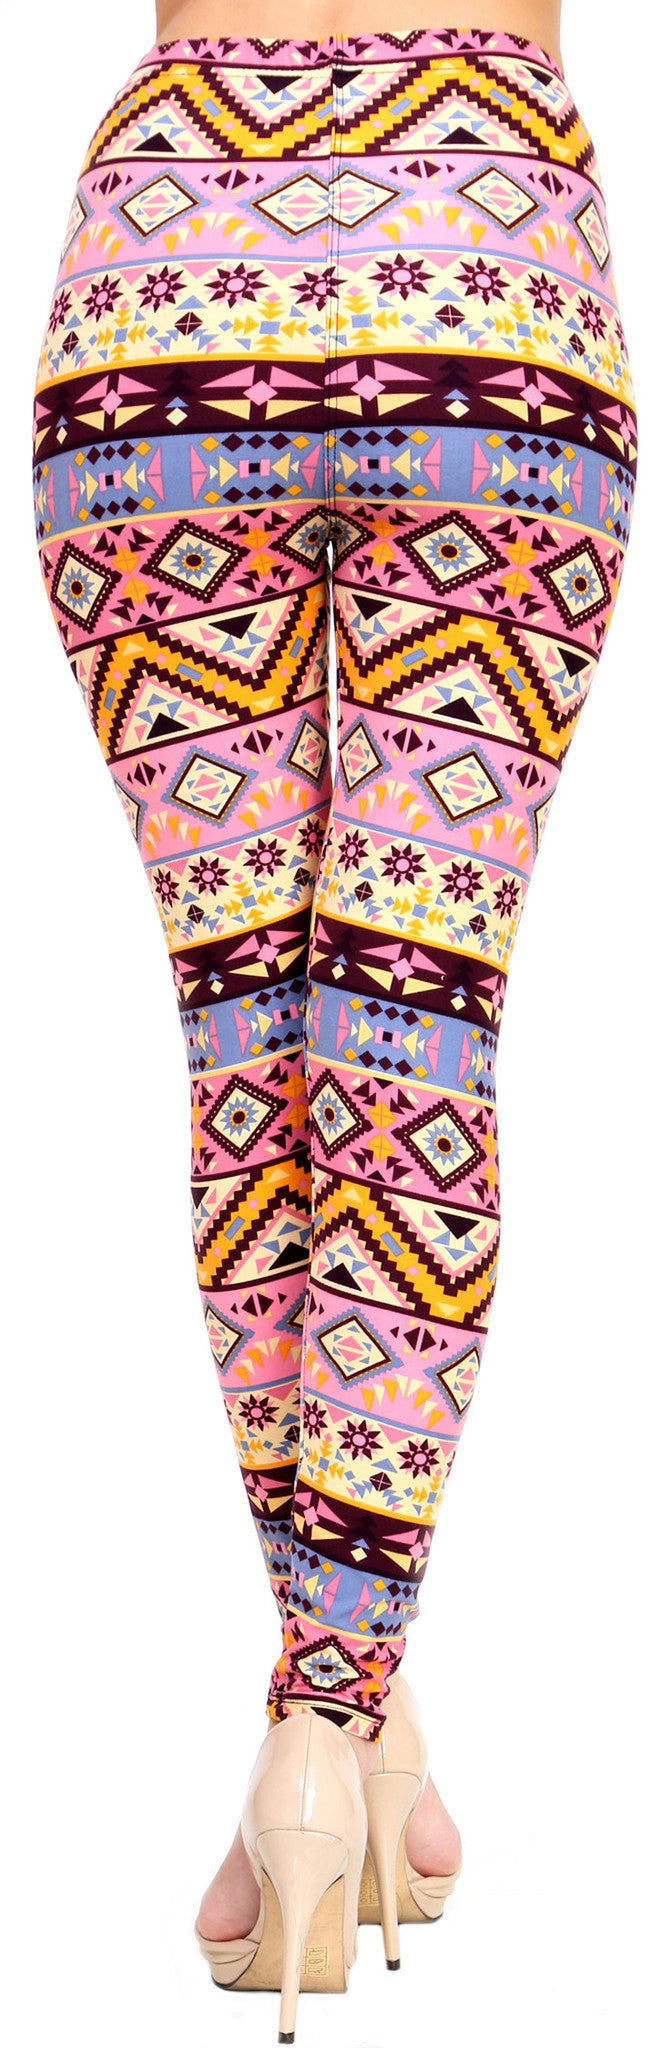 Printed Brushed Leggings - Pink Fiesta - VIV Collection